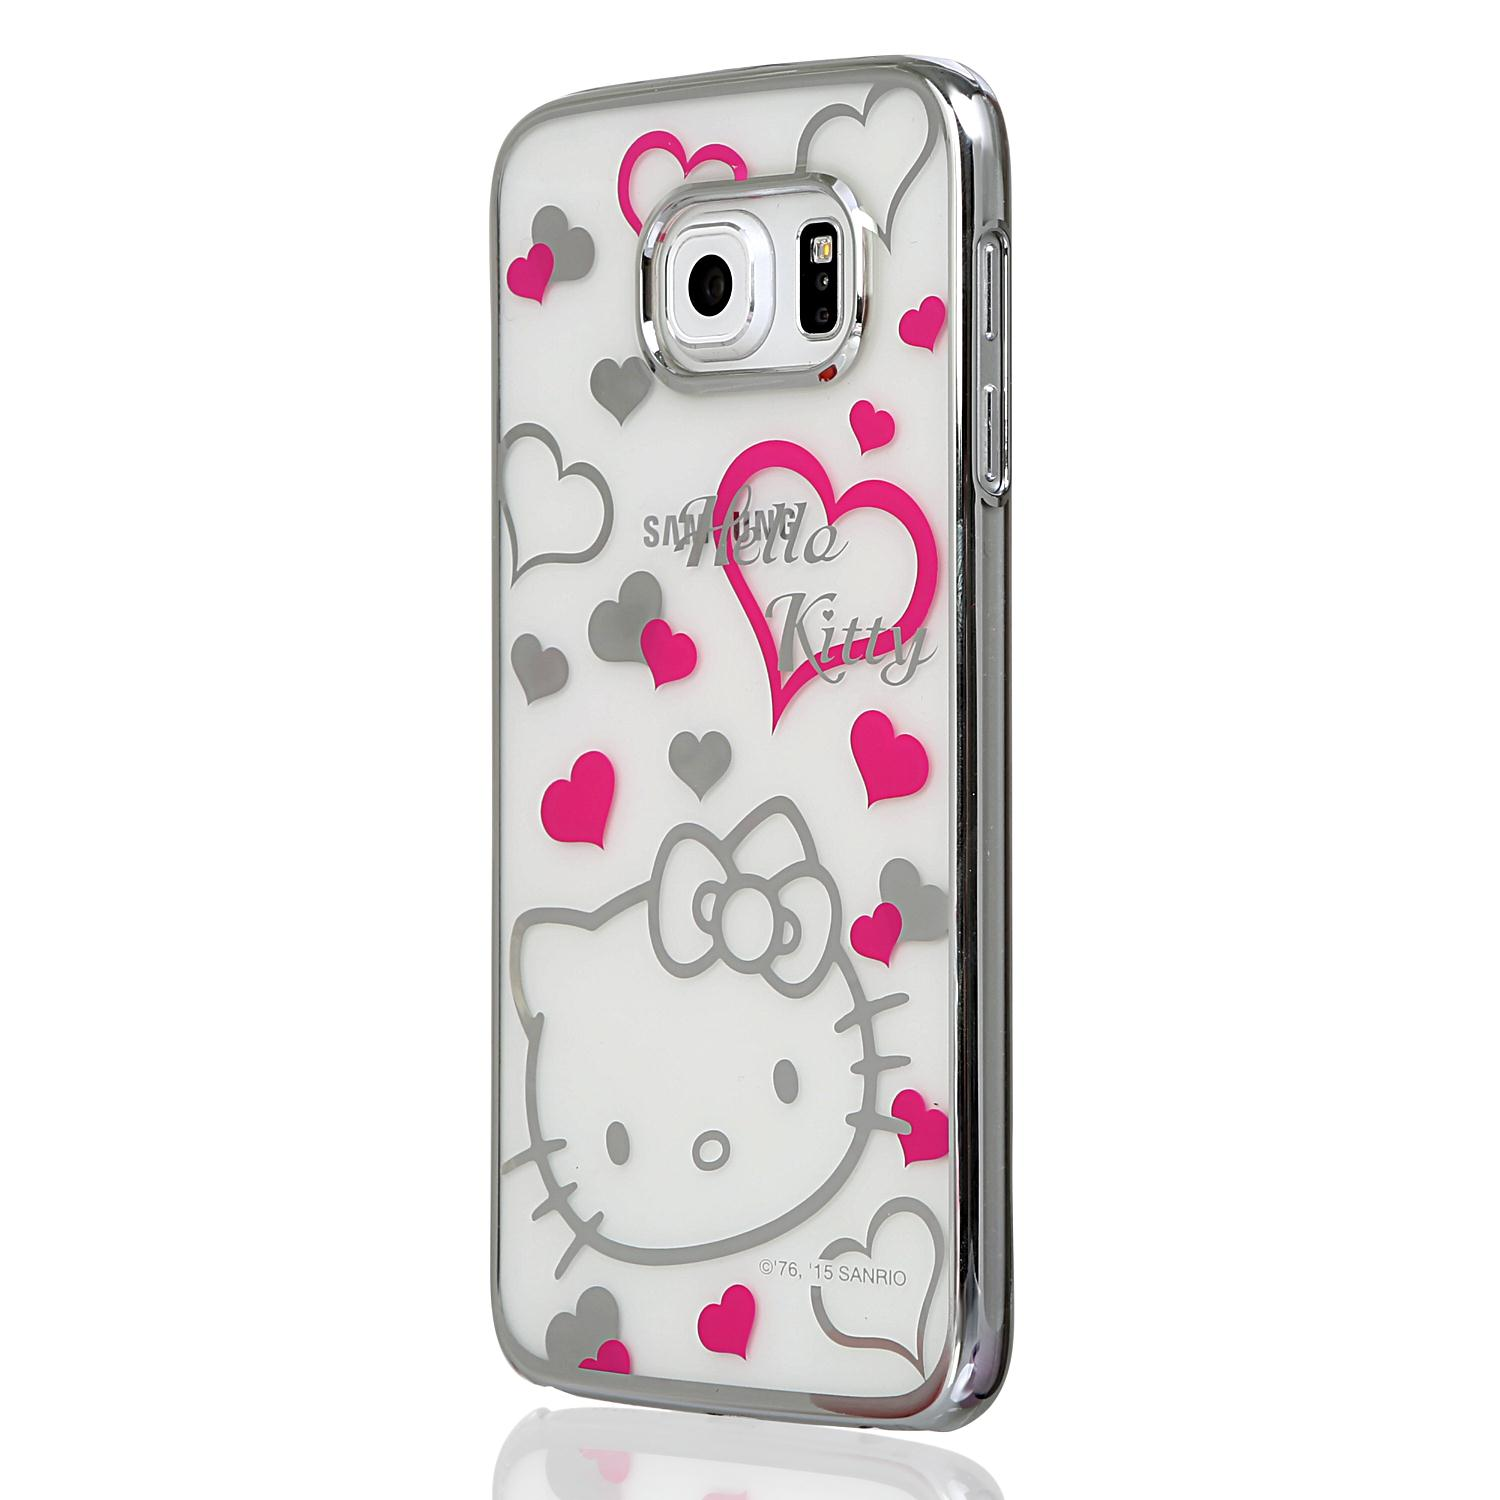 Hello kitty hello kitty samsung galaxy s6 s6 slim phone shell cartoon shell cute girl